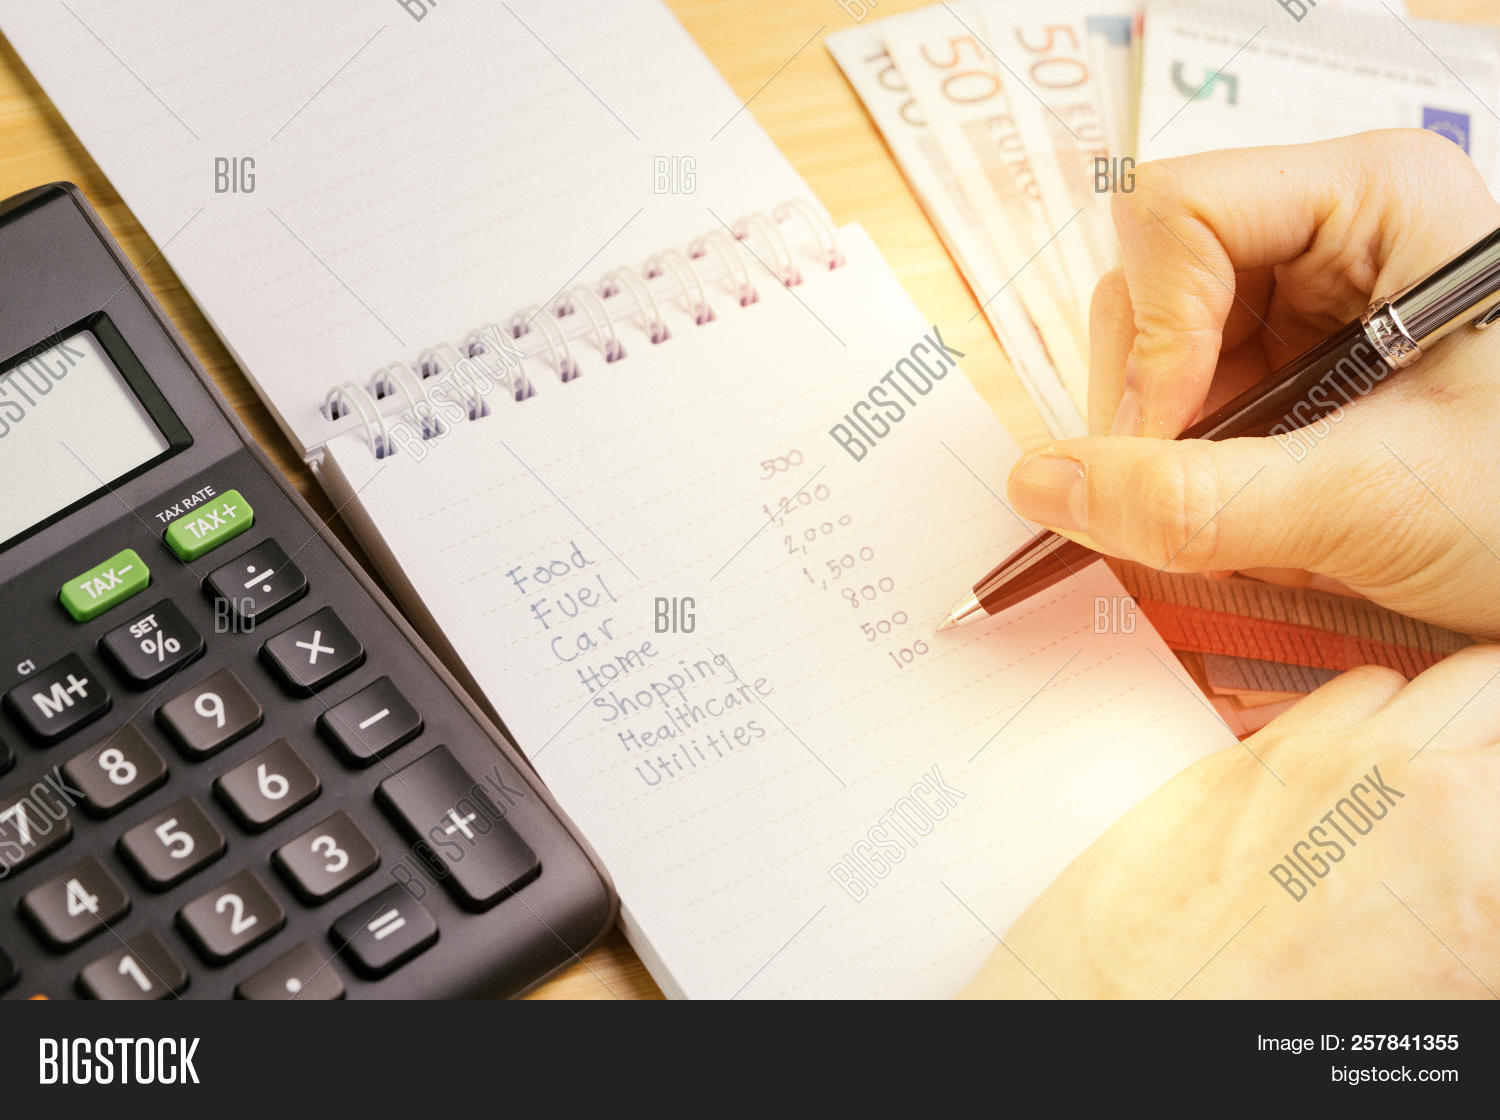 expense calculation image photo free trial bigstock